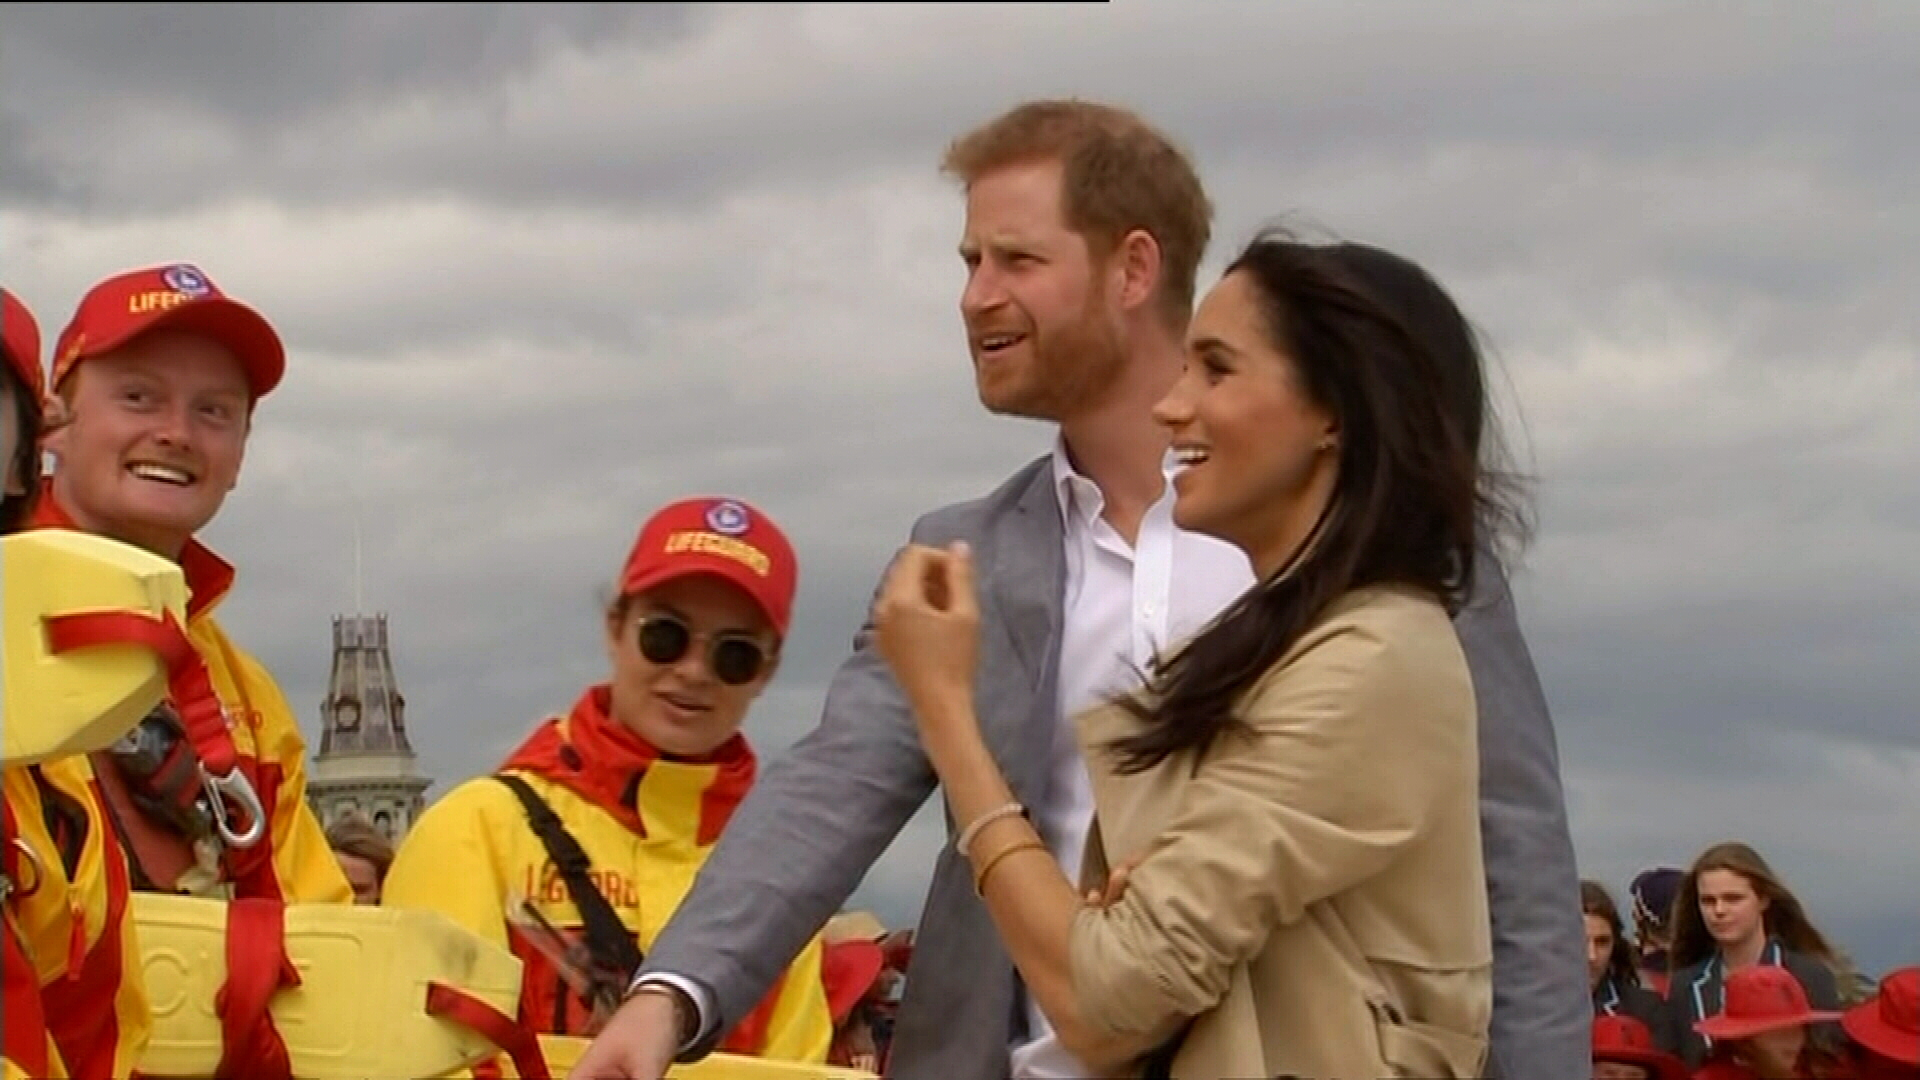 Prince Harry and Meghan meet with volunteers at Melbourne beach